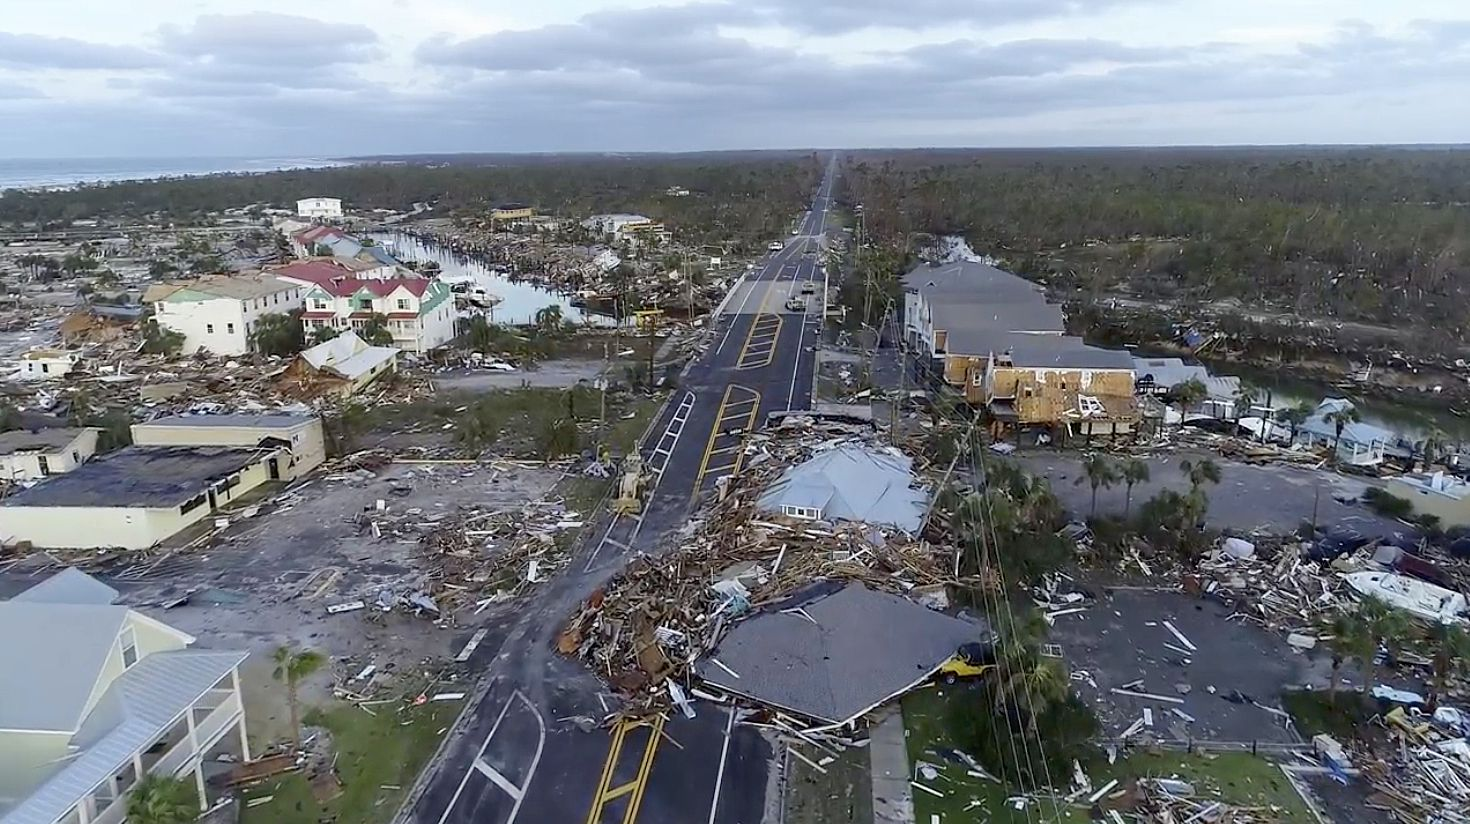 Hurricane Michael caused significant damage in Mexico Beach, Fla., and search-and-rescue teams fanned out across the Florida Panhandle on Thursday.